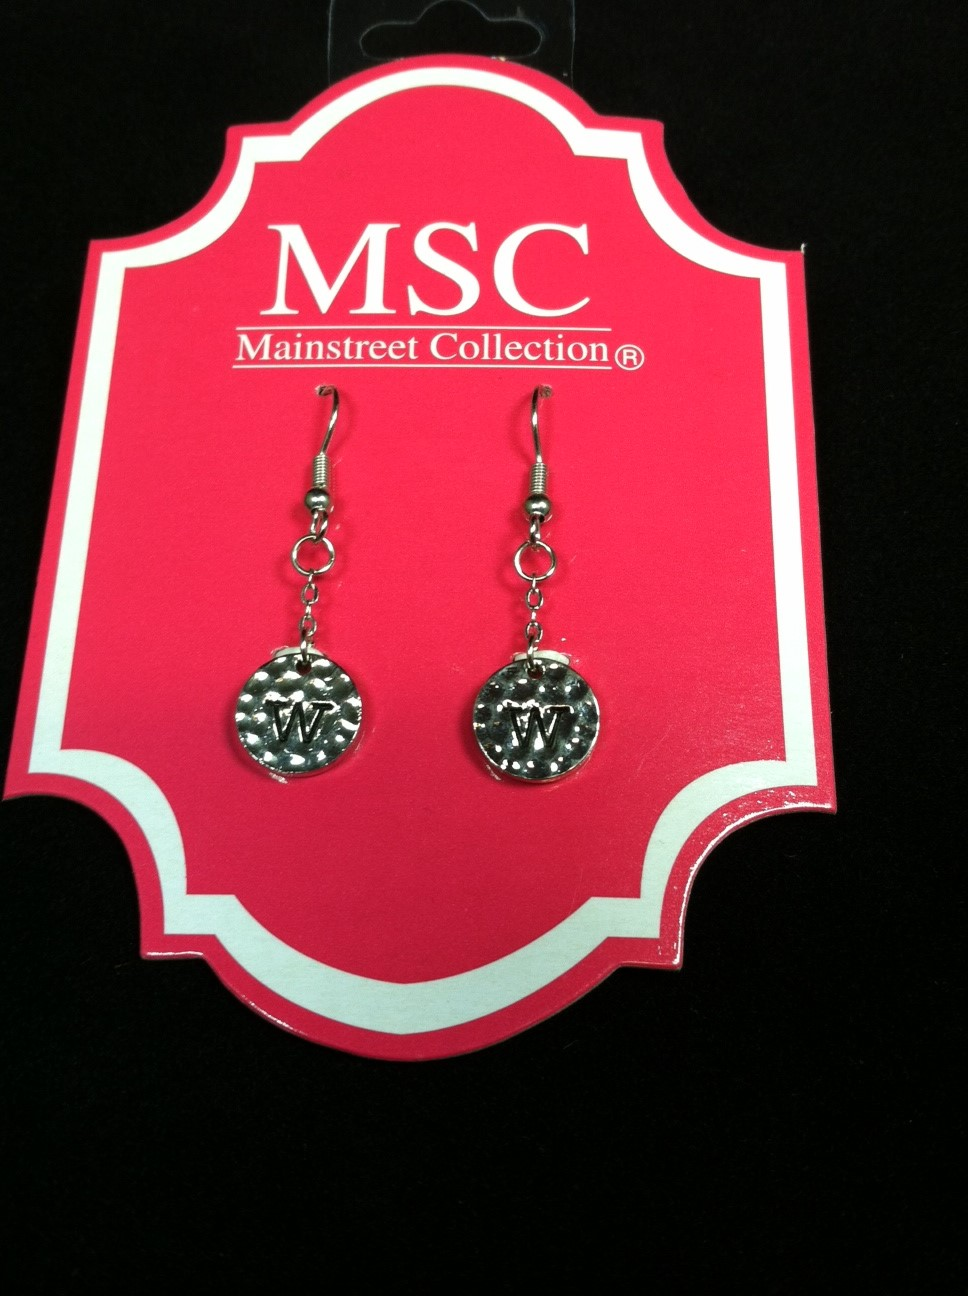 mainstreet collection monogram silver charm earrings